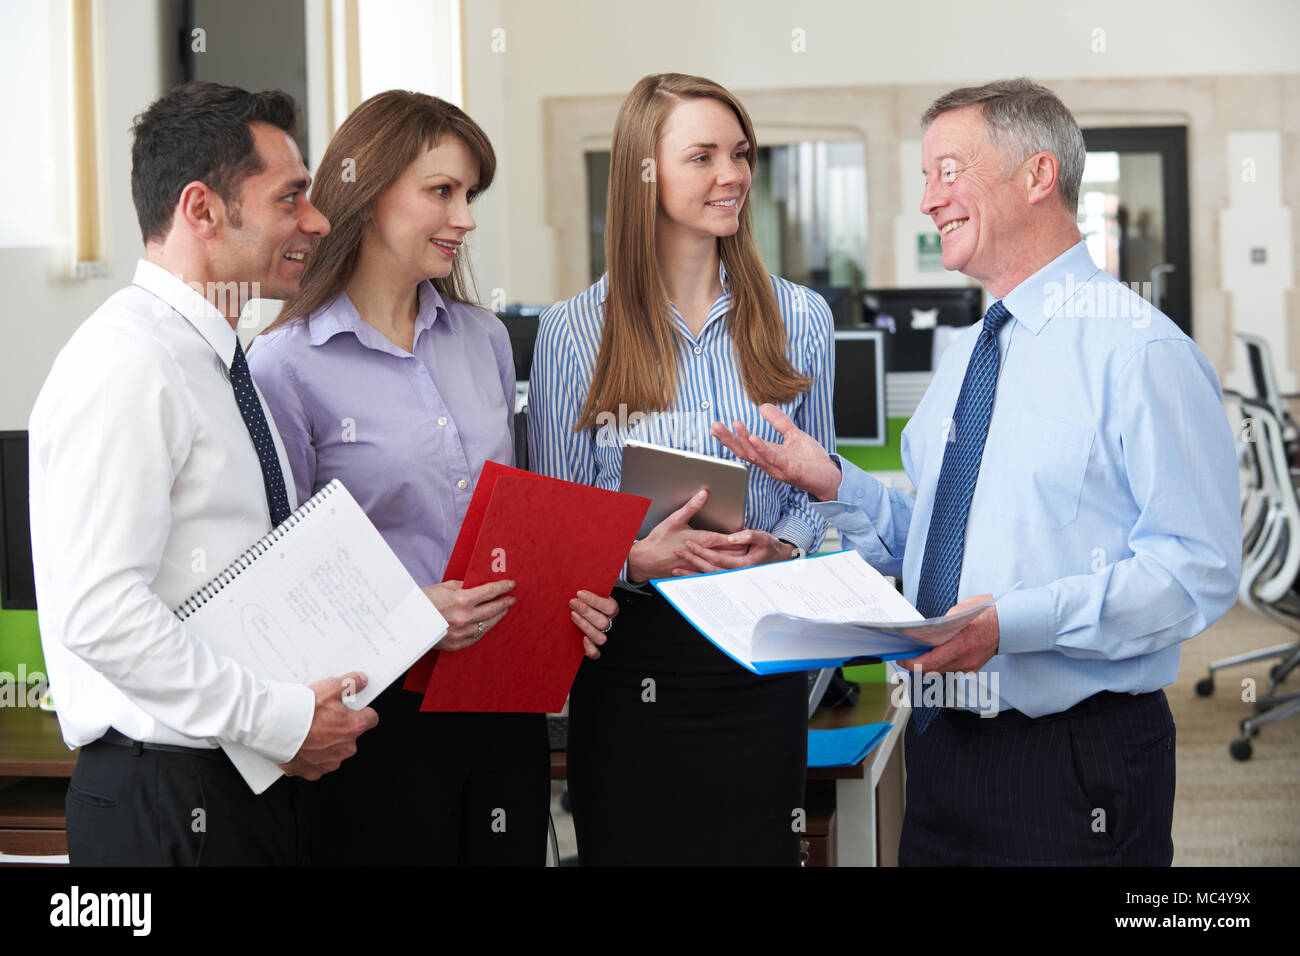 Business Team Having Meeting In Modern Office - Stock Image